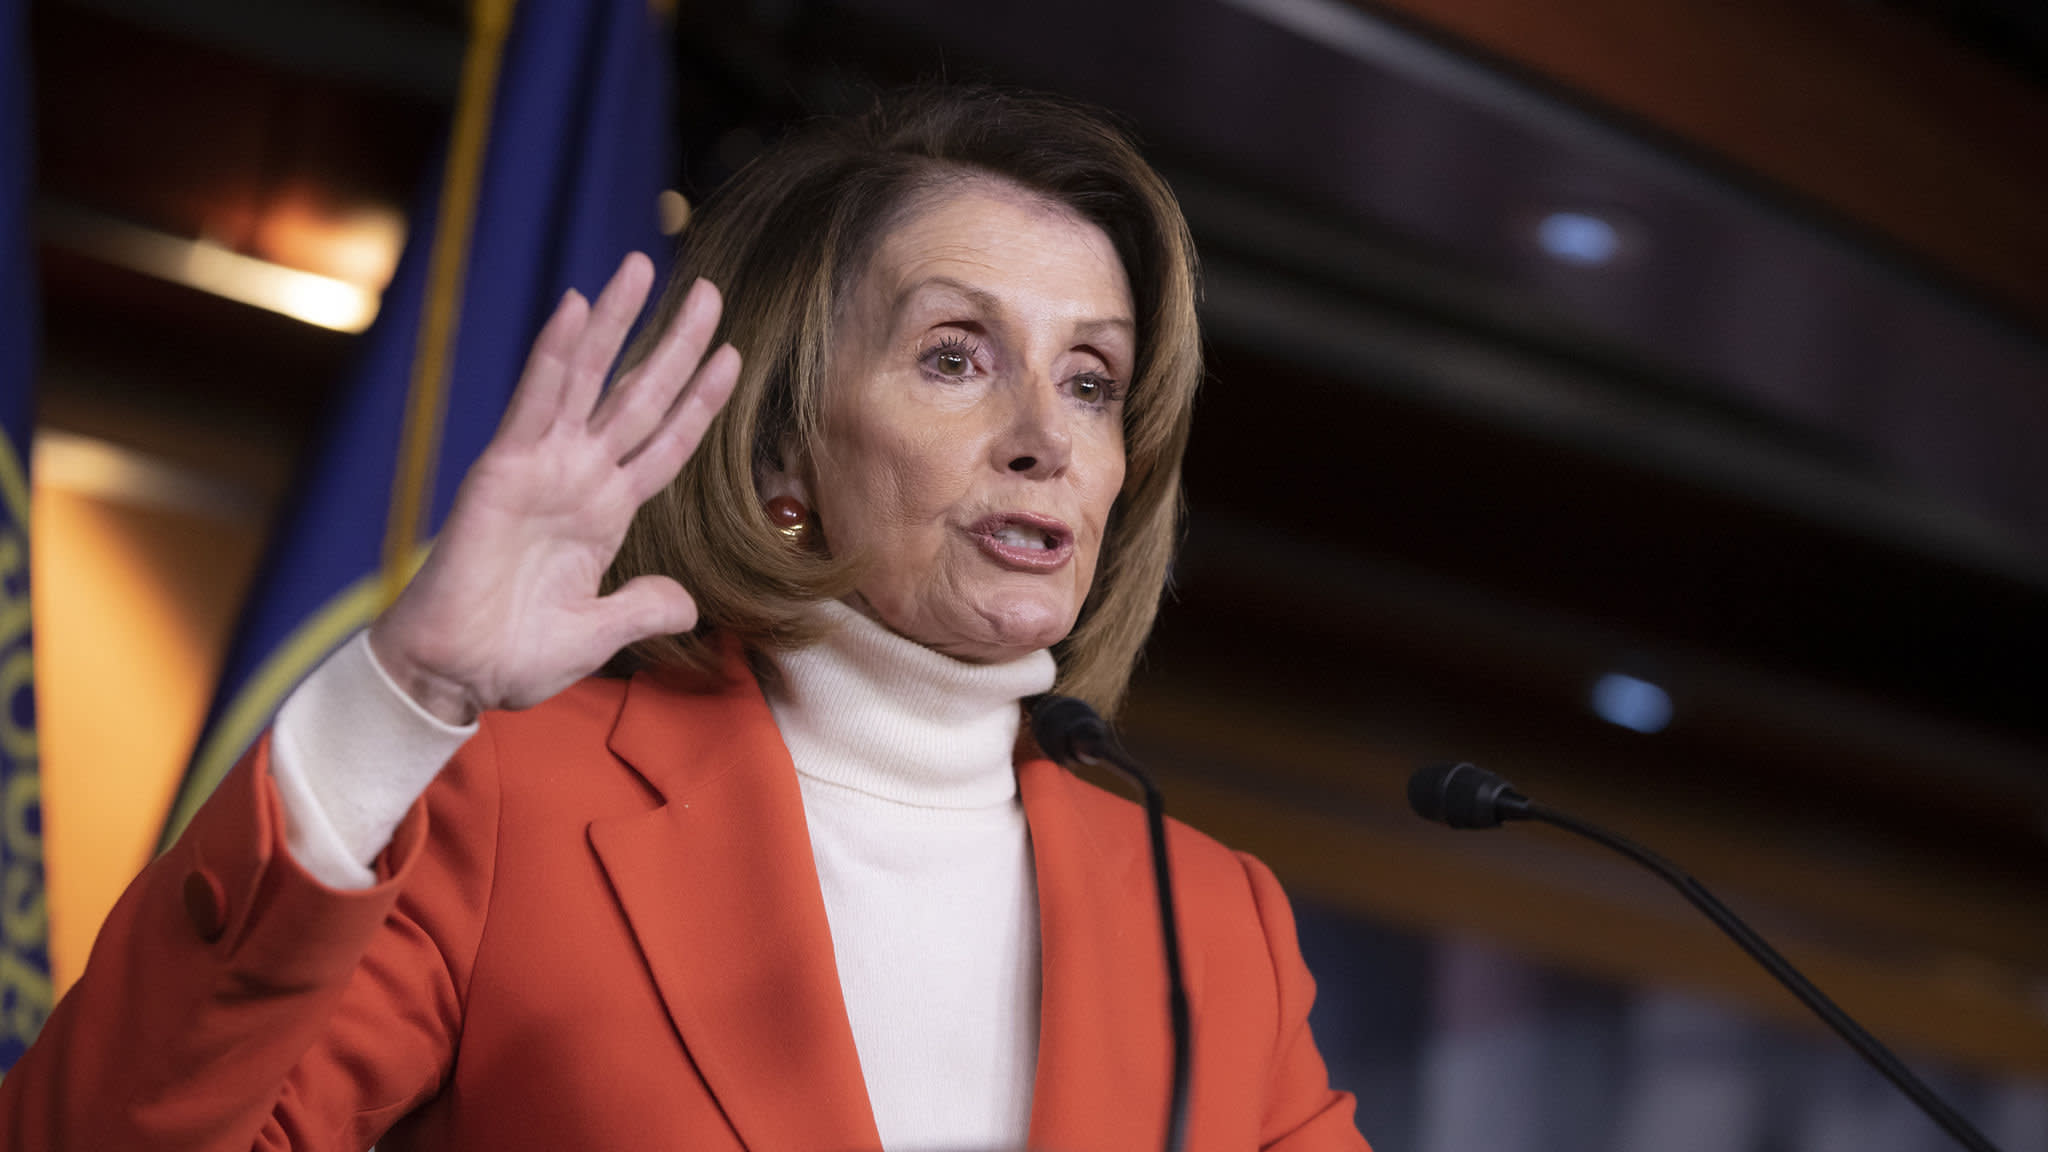 Nancy Pelosi boosts chance of regaining House speakership